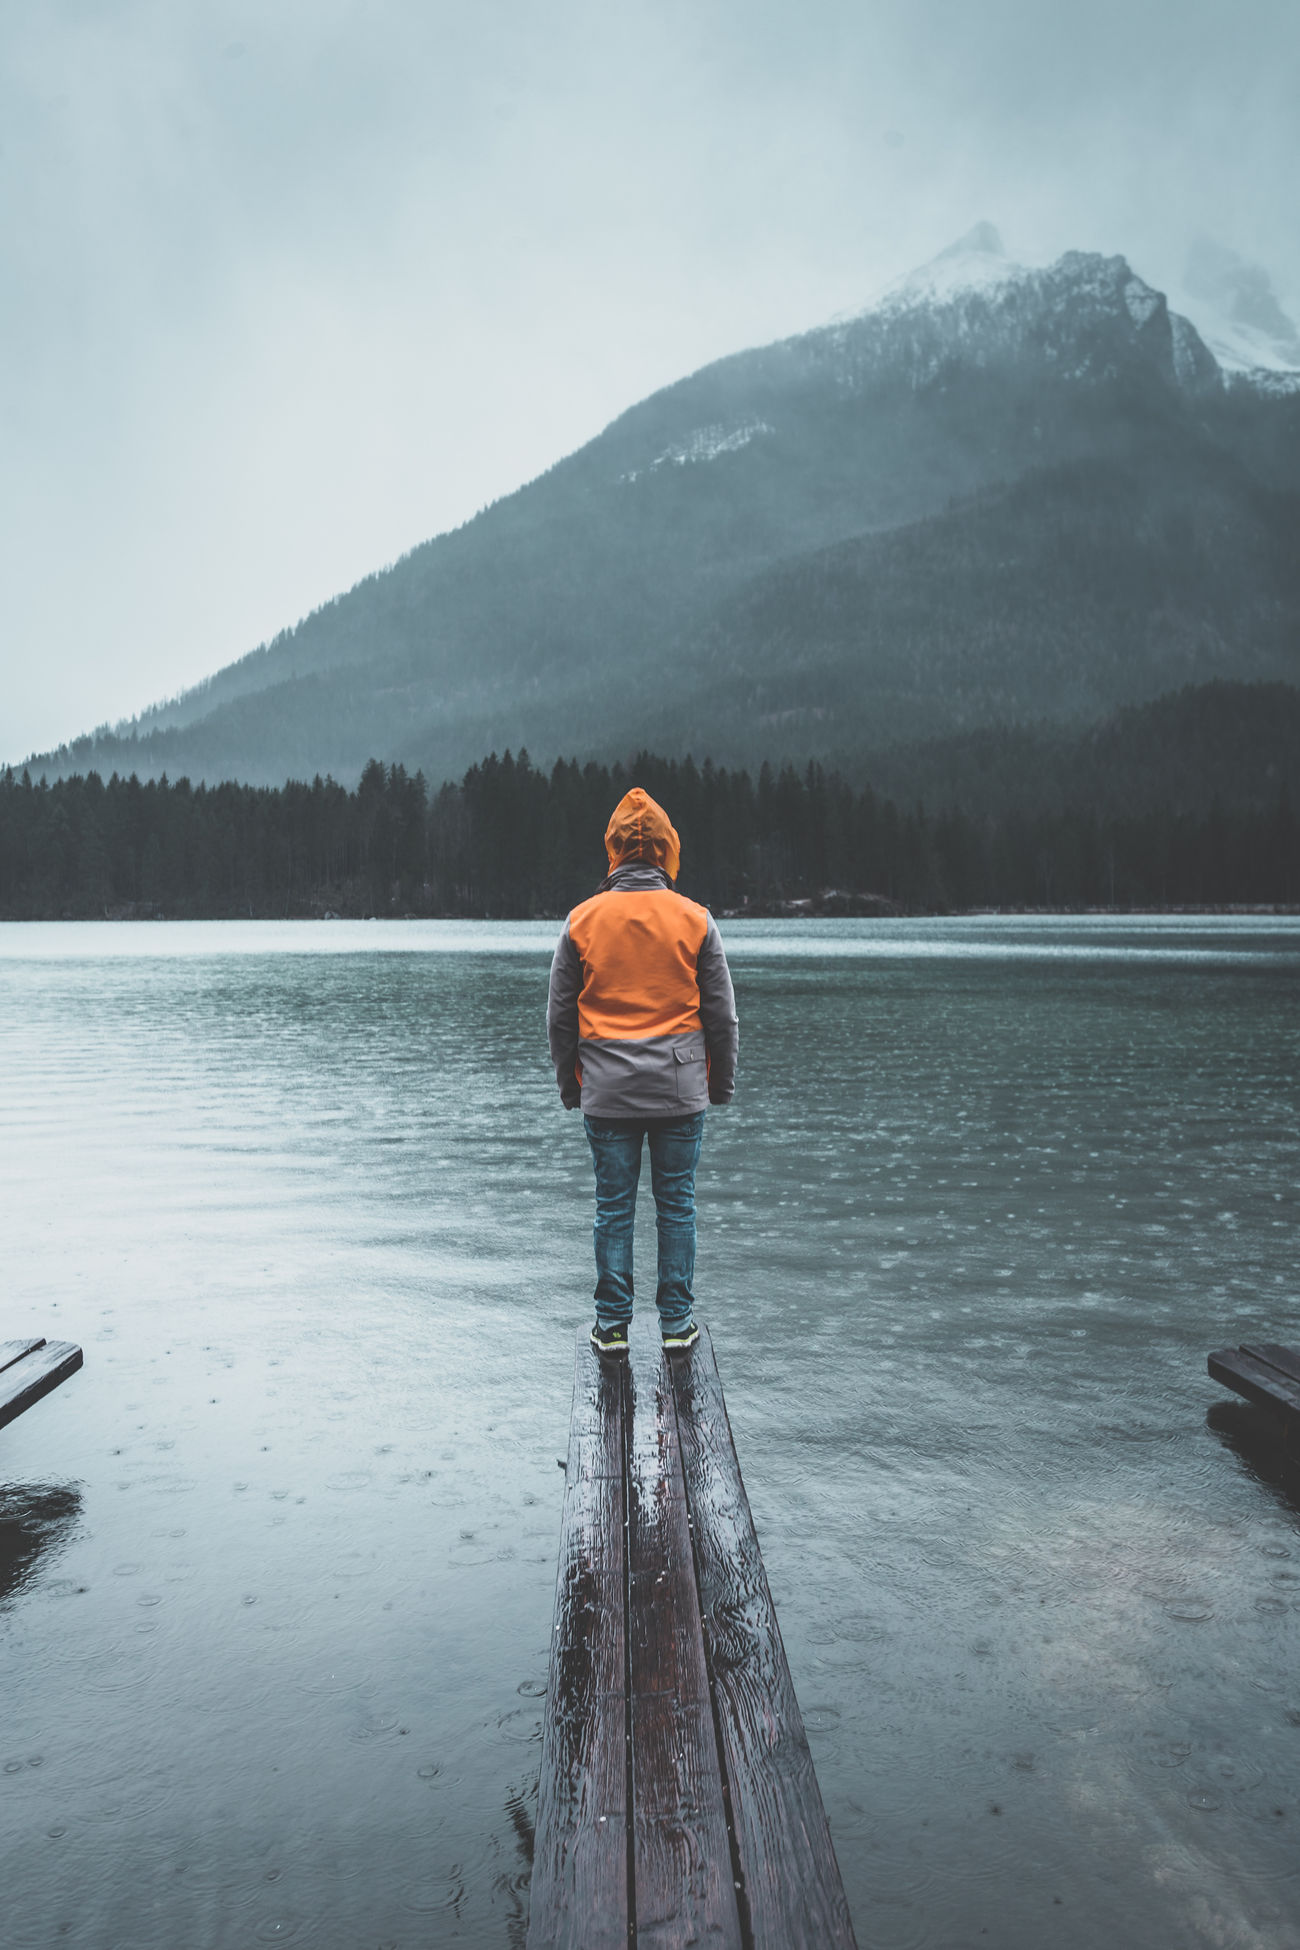 Adult Adults Only Alps Bavaria Bavarian Alps Berchtesgaden Berchtesgaden Alps Berchtesgadener Land  Day Foggy Hintersee Jacket Jetty Lake Lake View Lakeview Nature One Person Orange Outdoors People Pier Rain Rainy Days Water